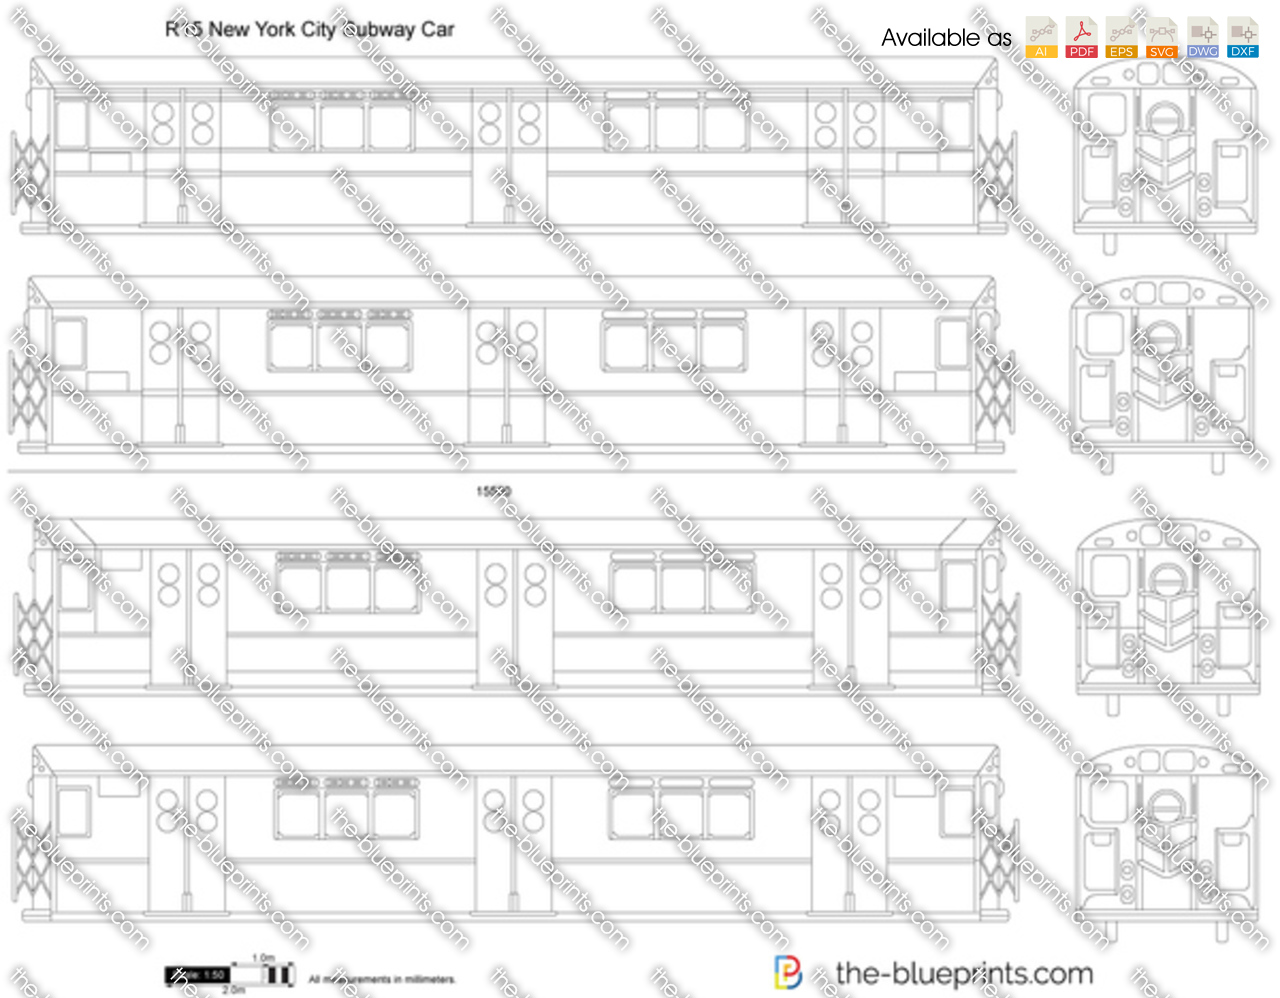 The blueprints vector drawing r15 new york city subway car r15 new york city subway car malvernweather Image collections